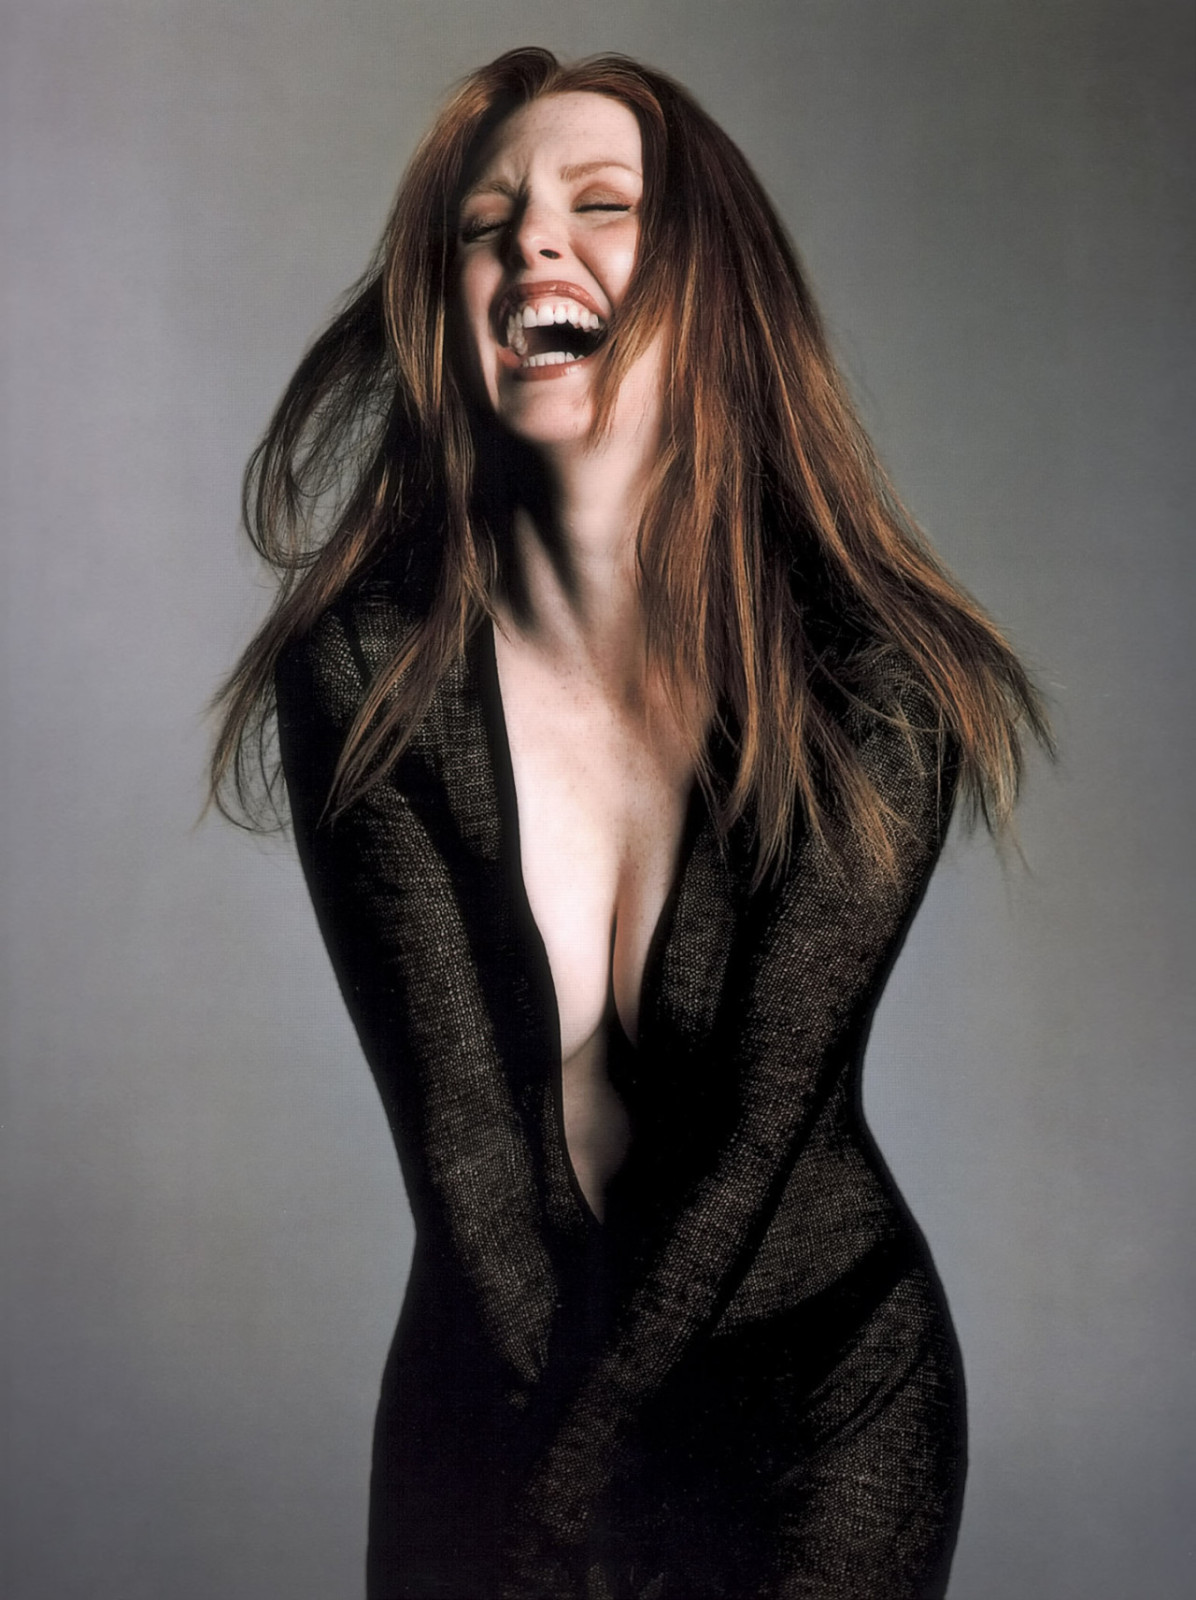 young julianne moore actress dress cleavage braless freckles ginger